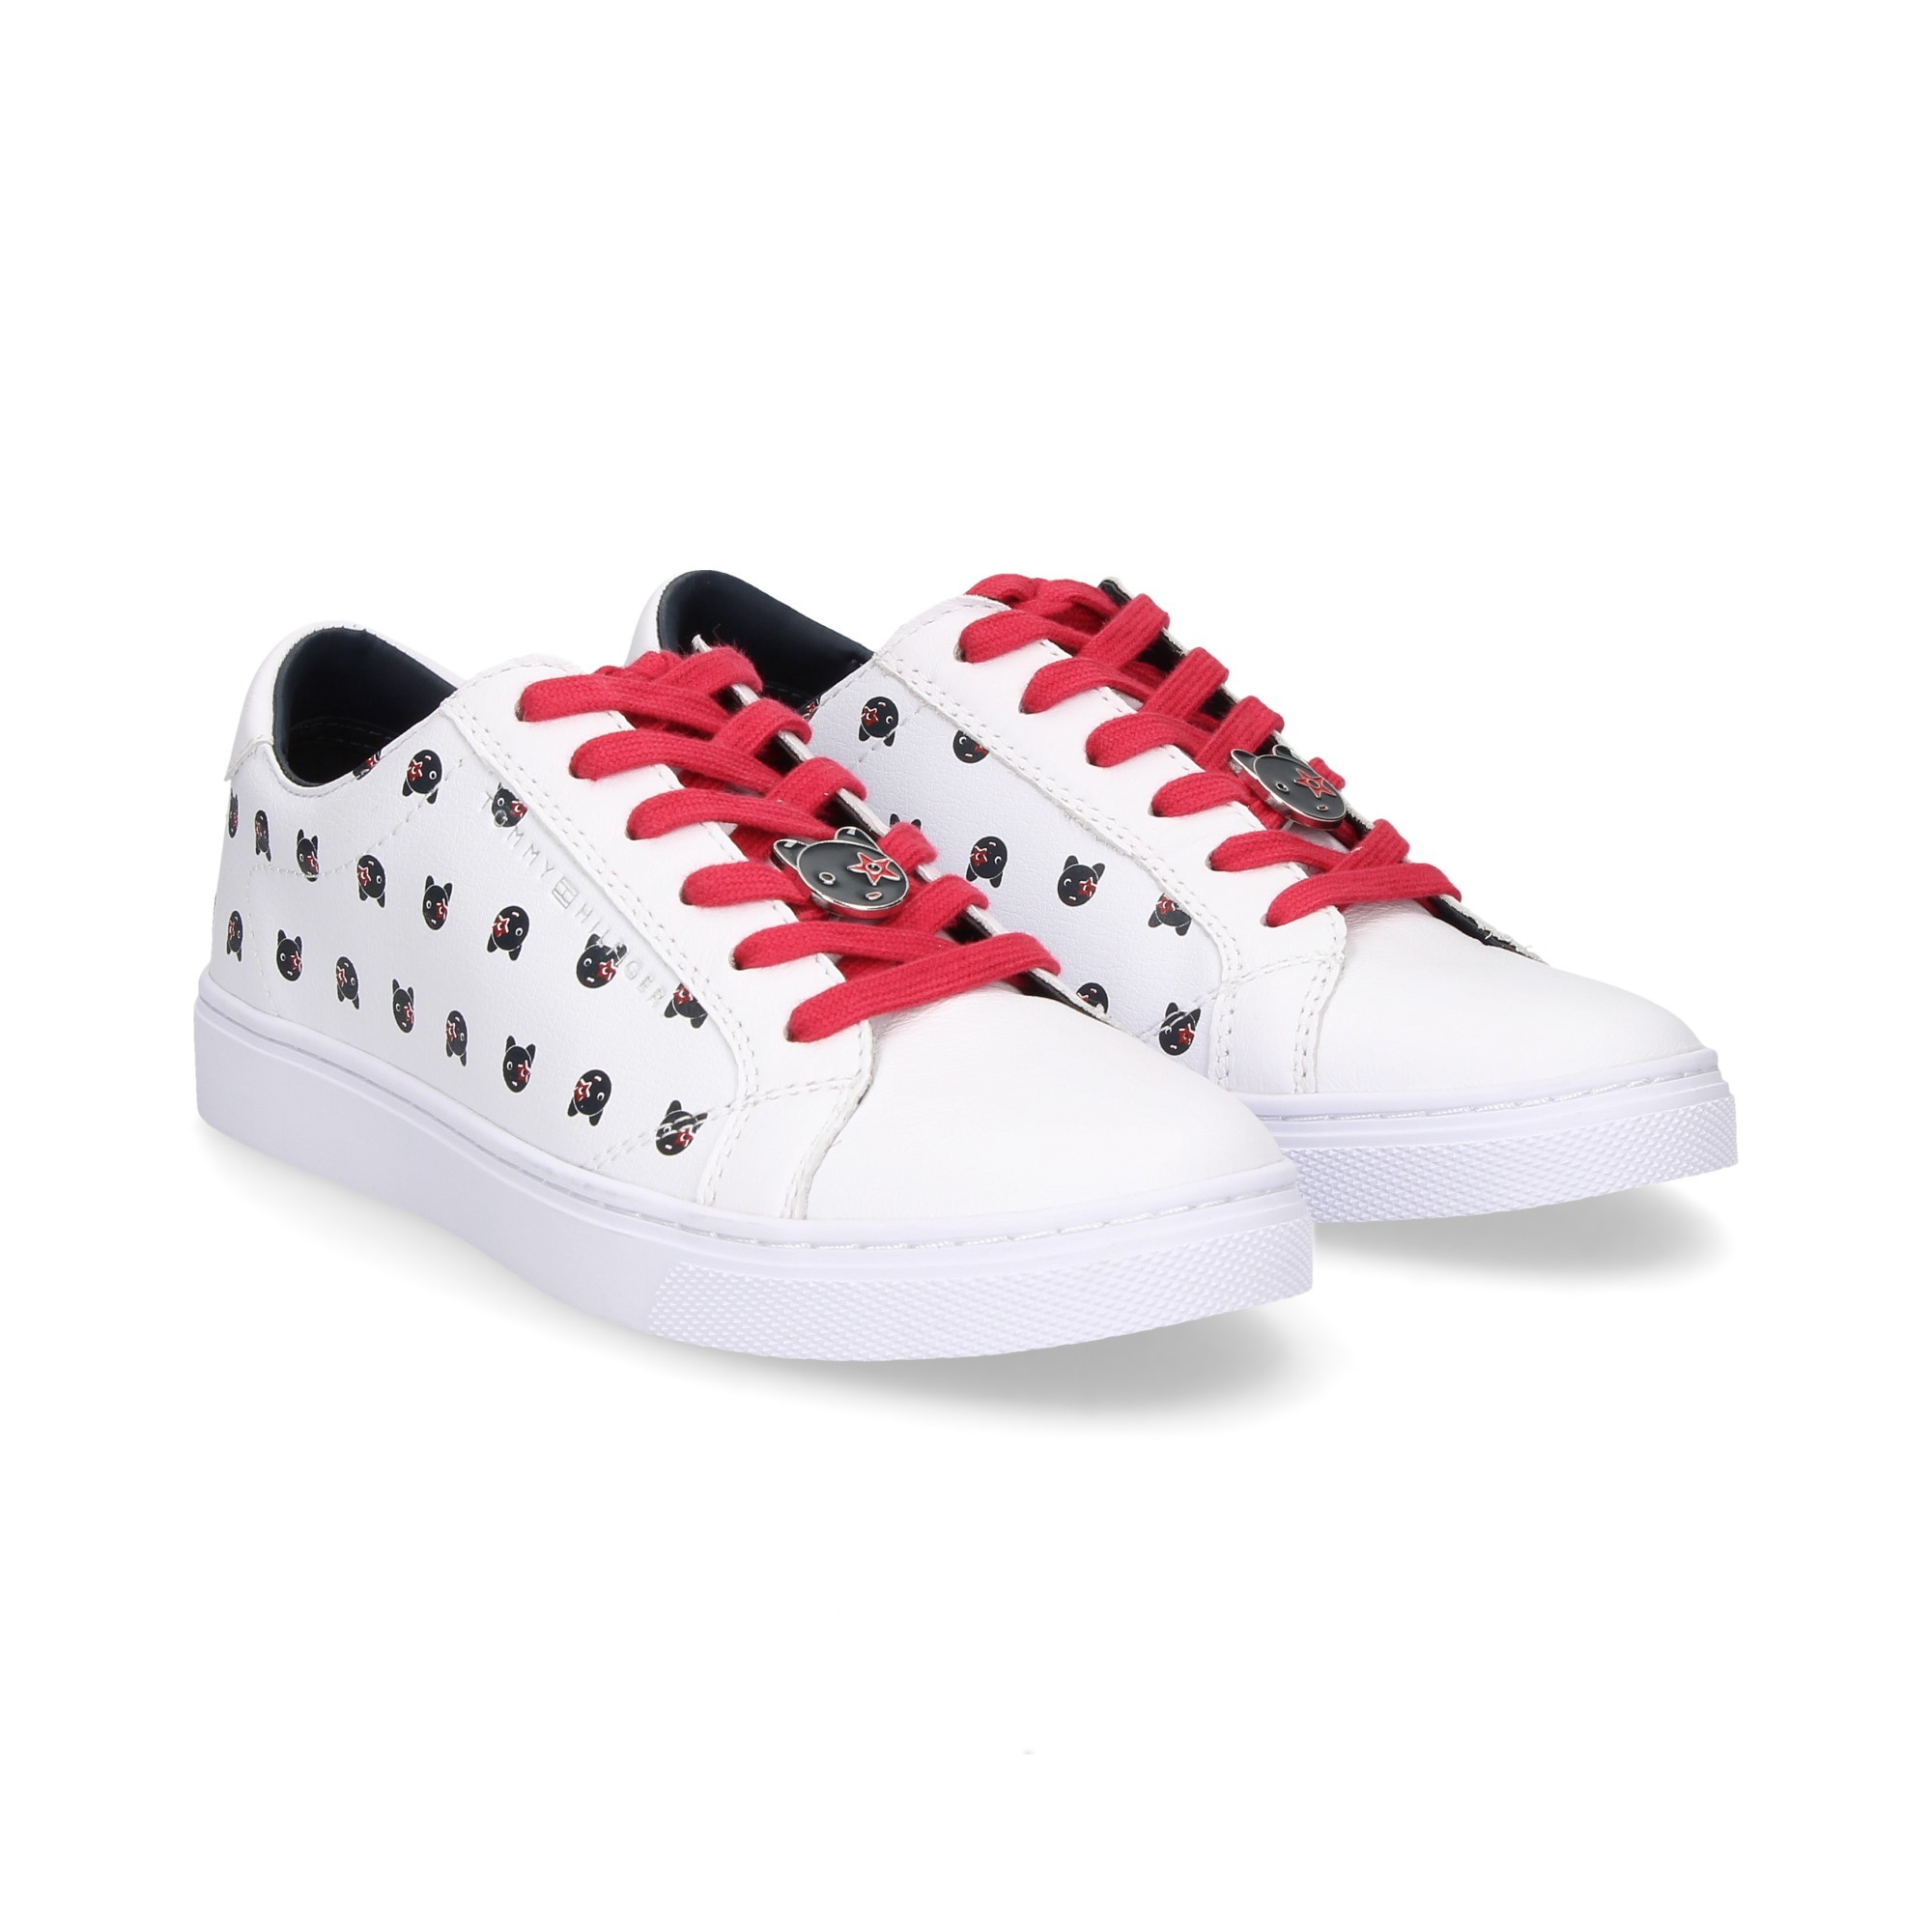 af93710d93a8d TOMMY HILFIGER Women s Sneakers FW03619100 WHITE